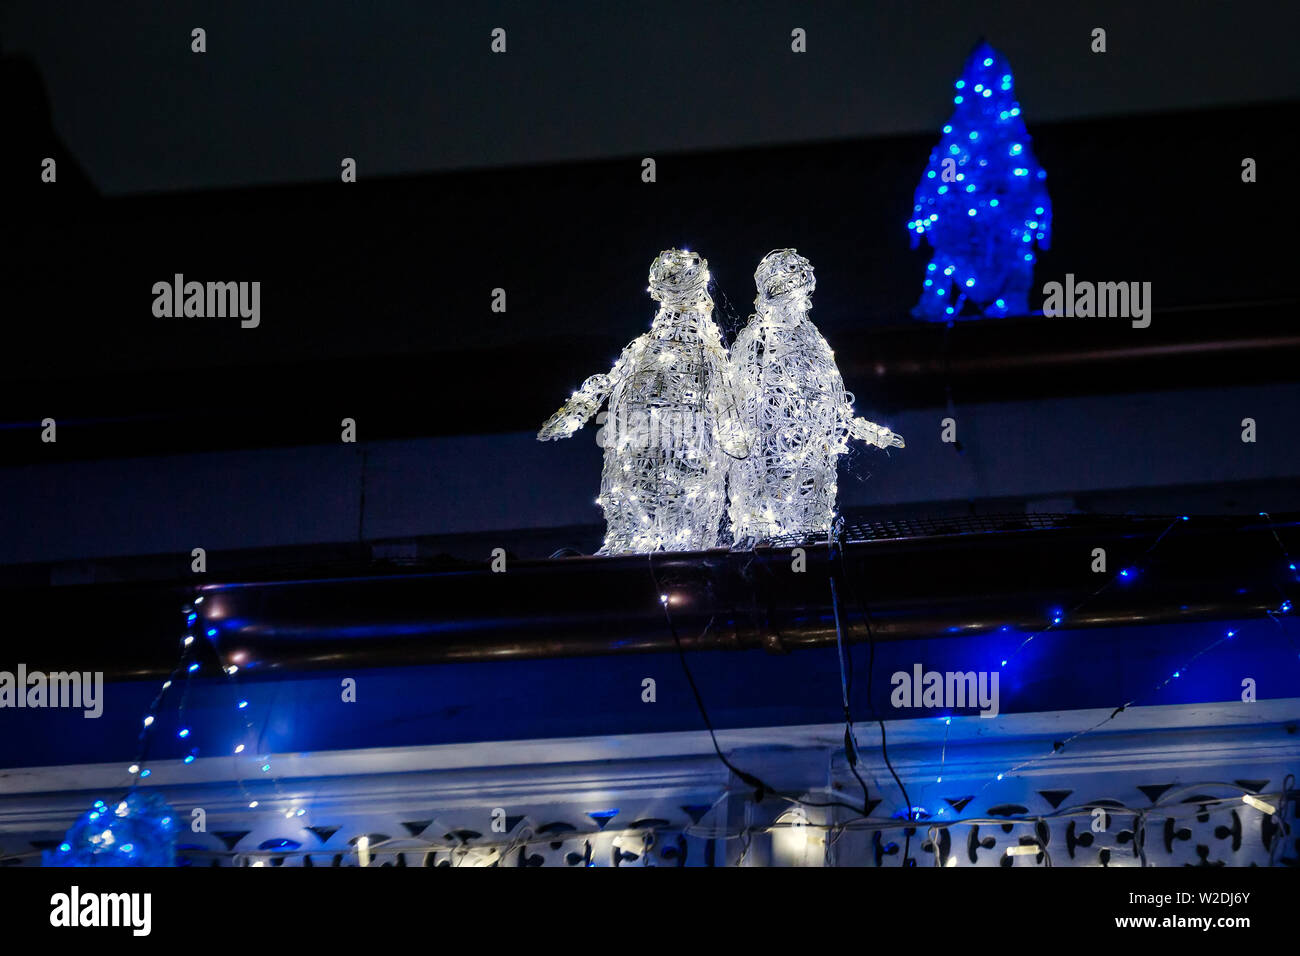 Beautiful Outdoor Christmas Lights Every Year Decorating Houses In Auckland New Zealand Stock Photo Alamy